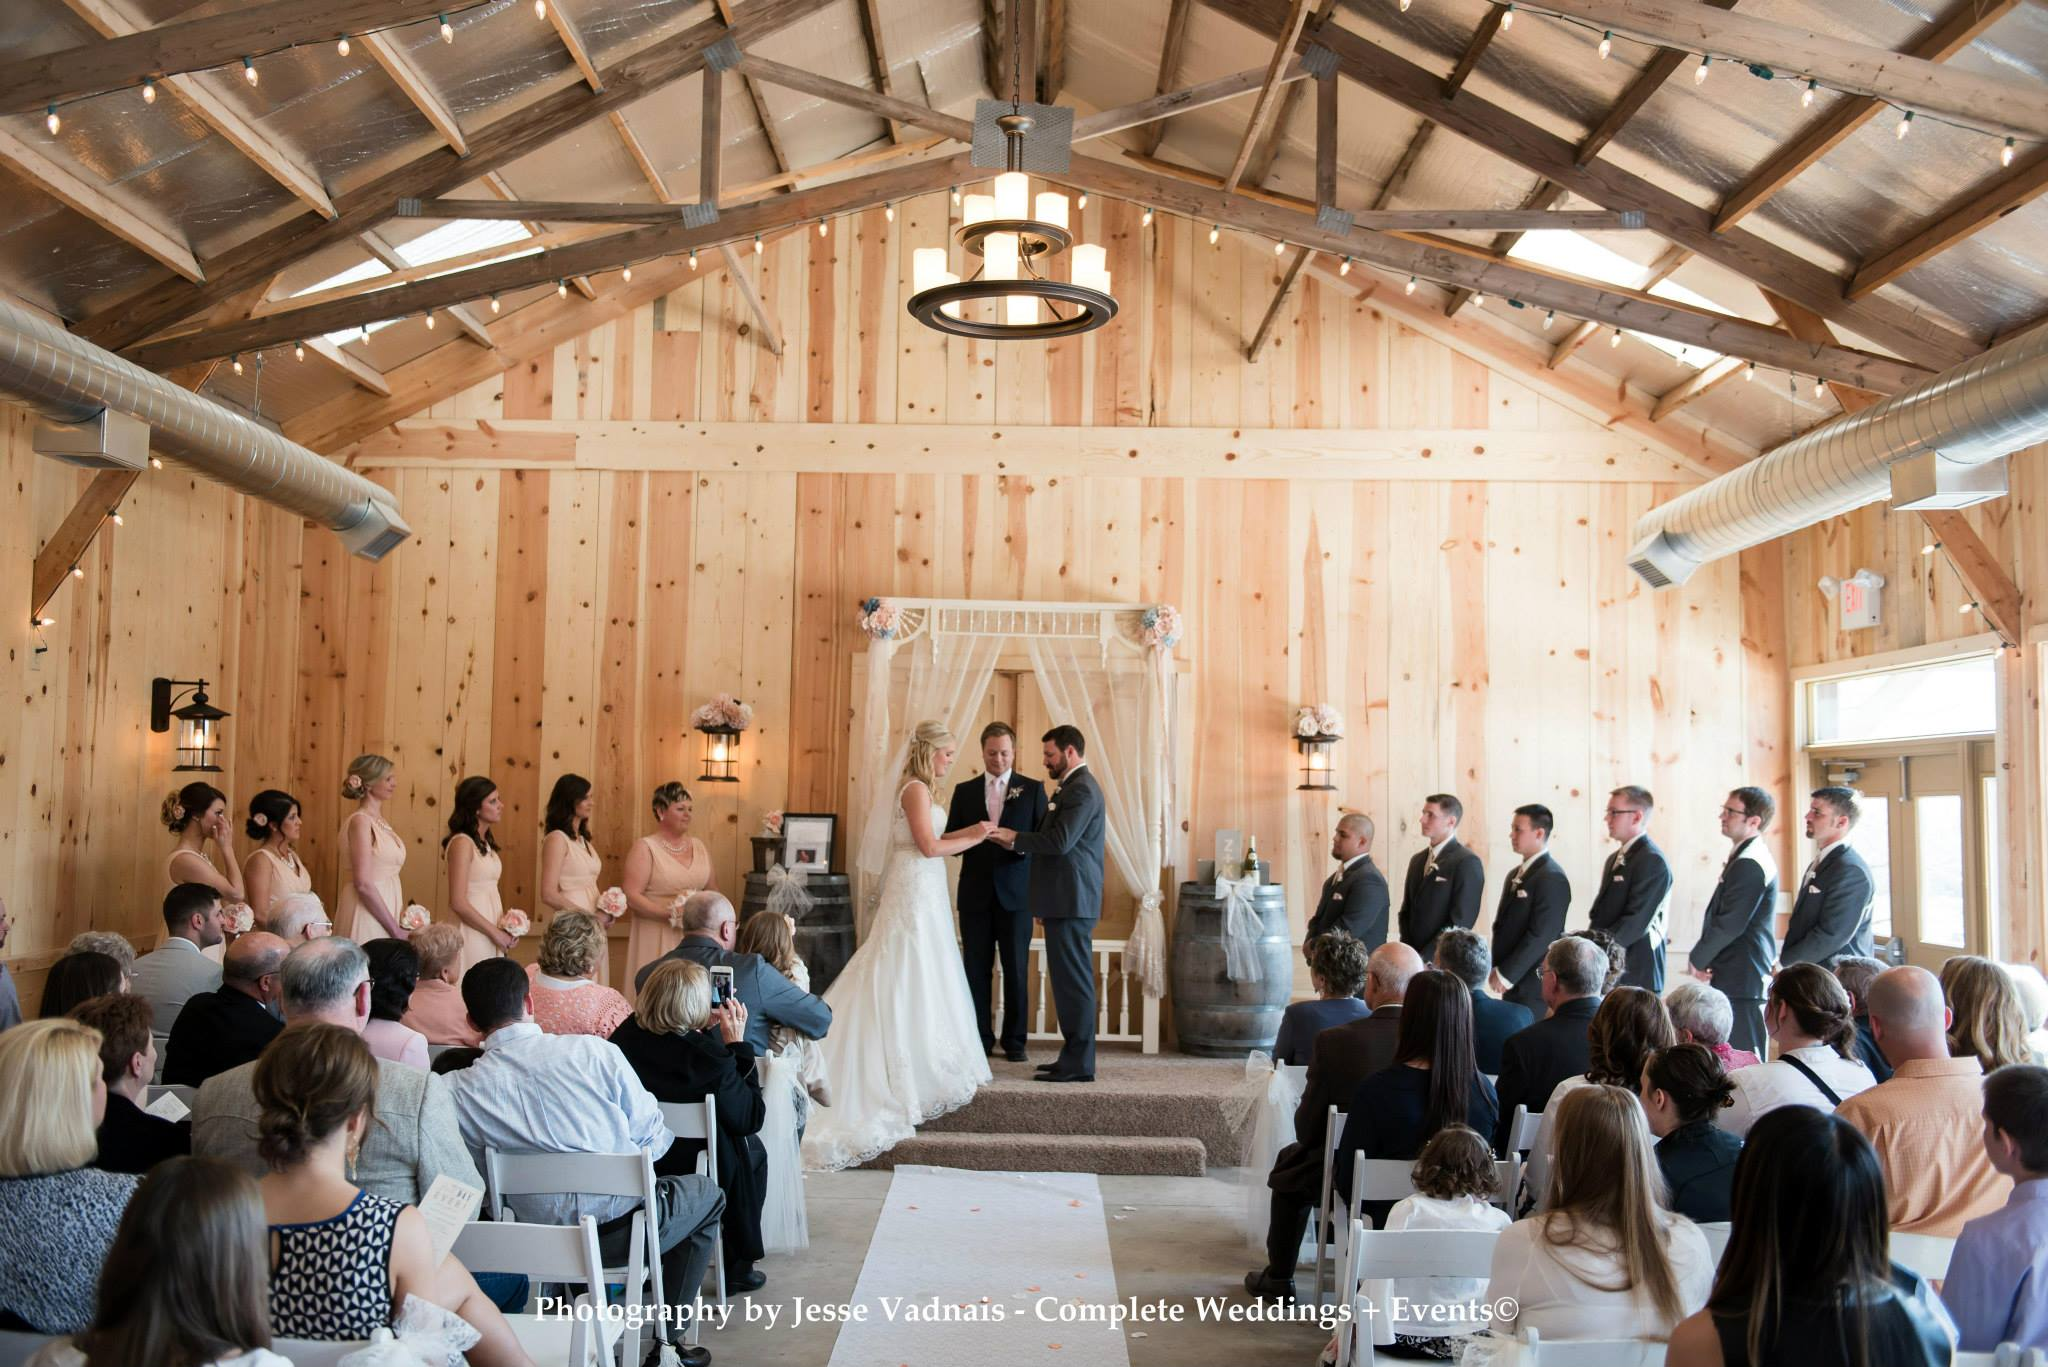 Ceremony in the barn